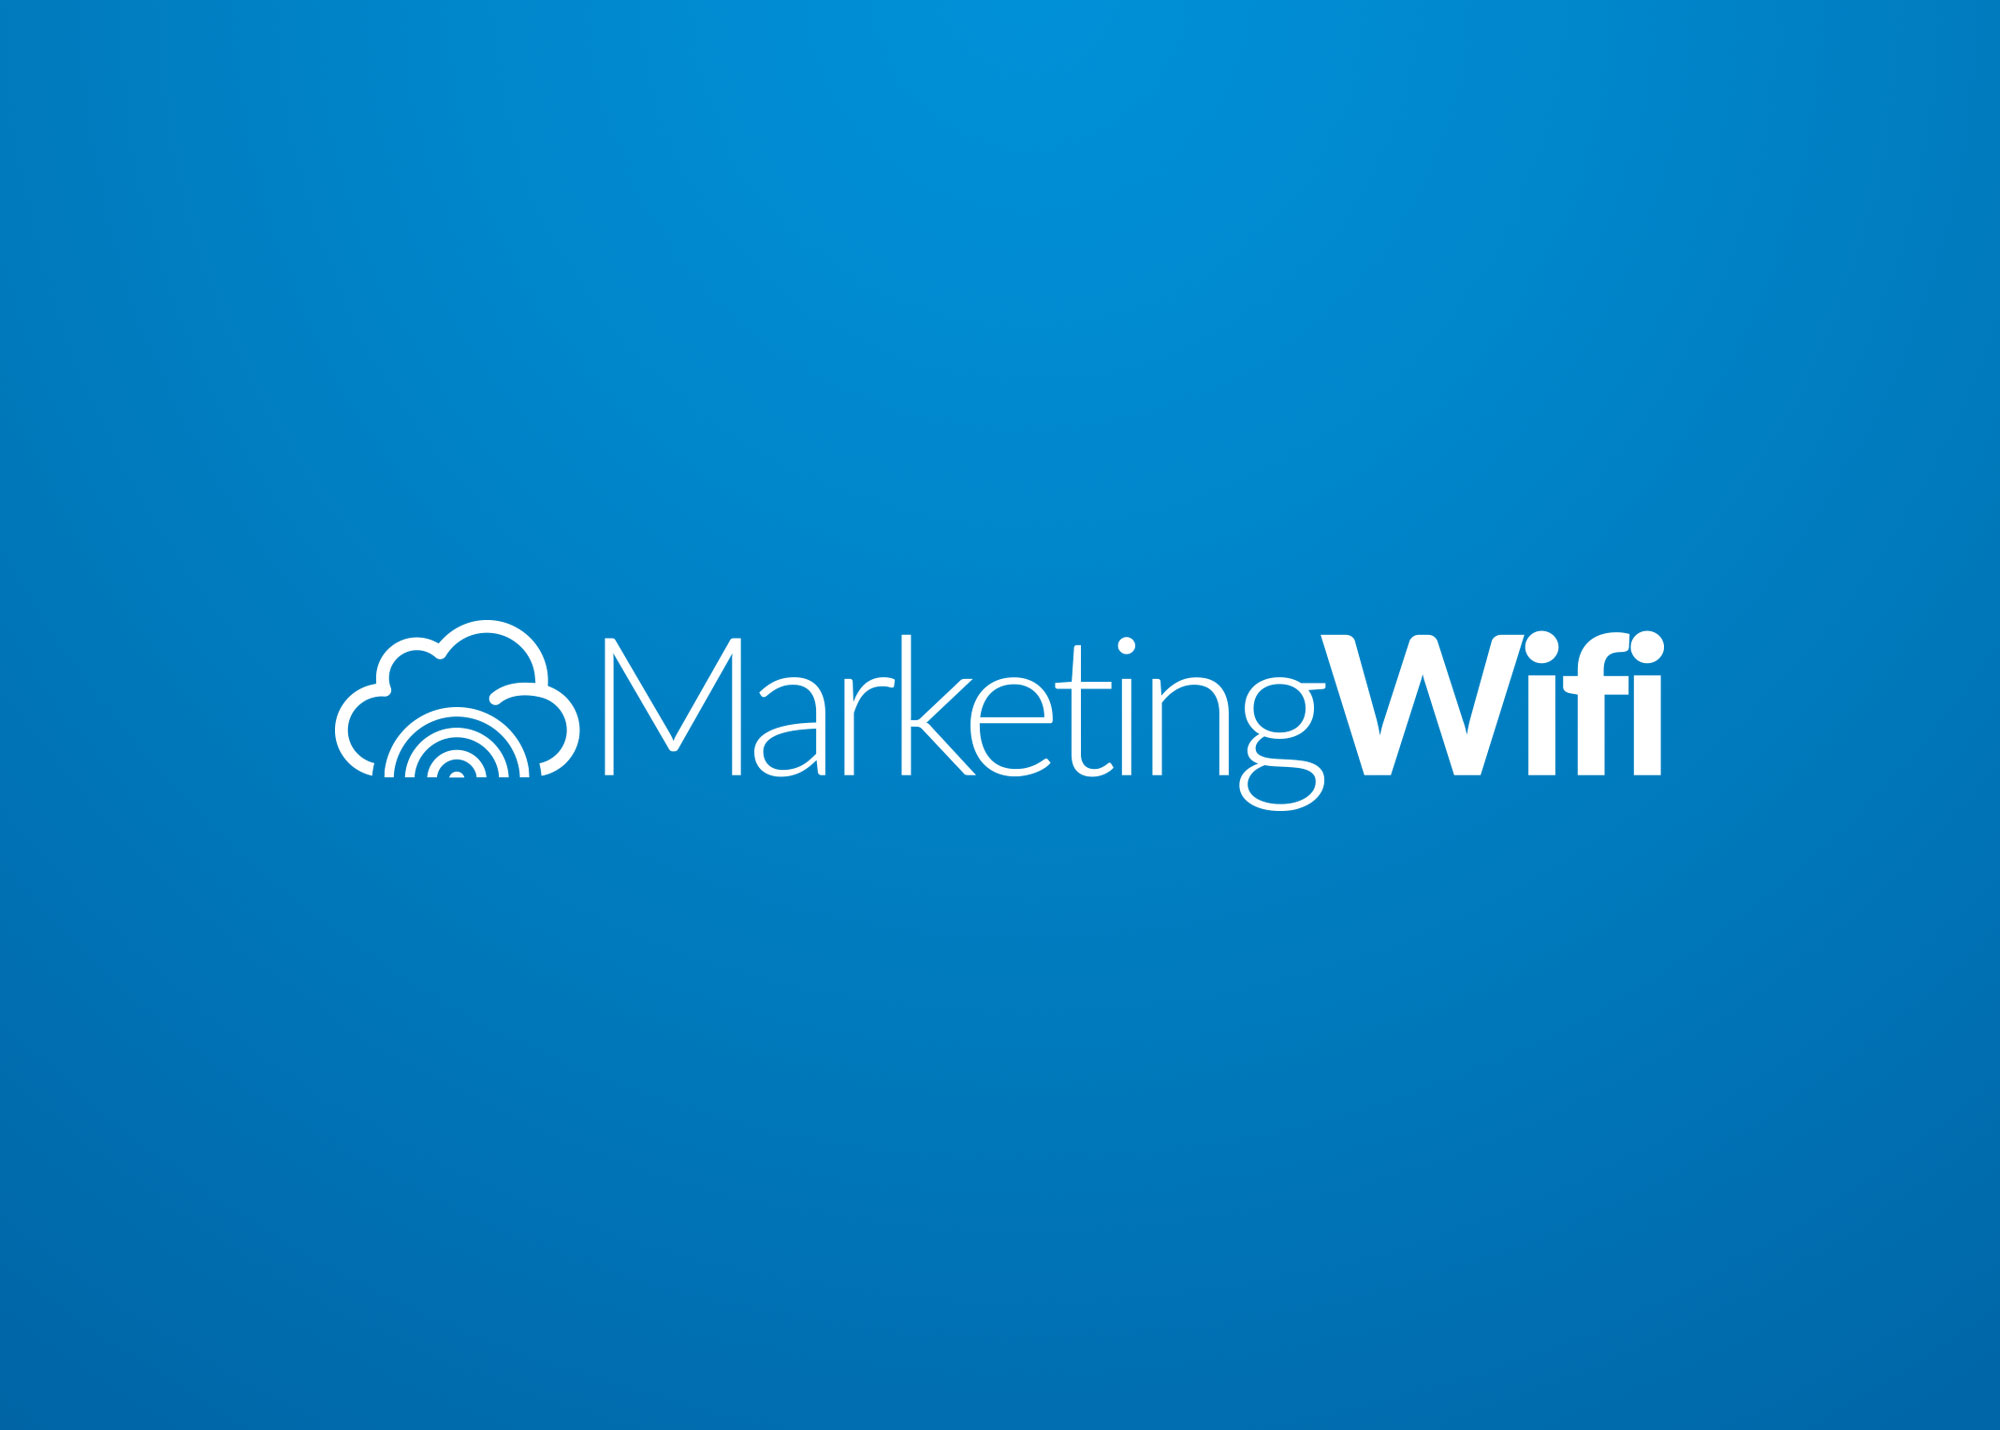 Marketing WIfi Logo